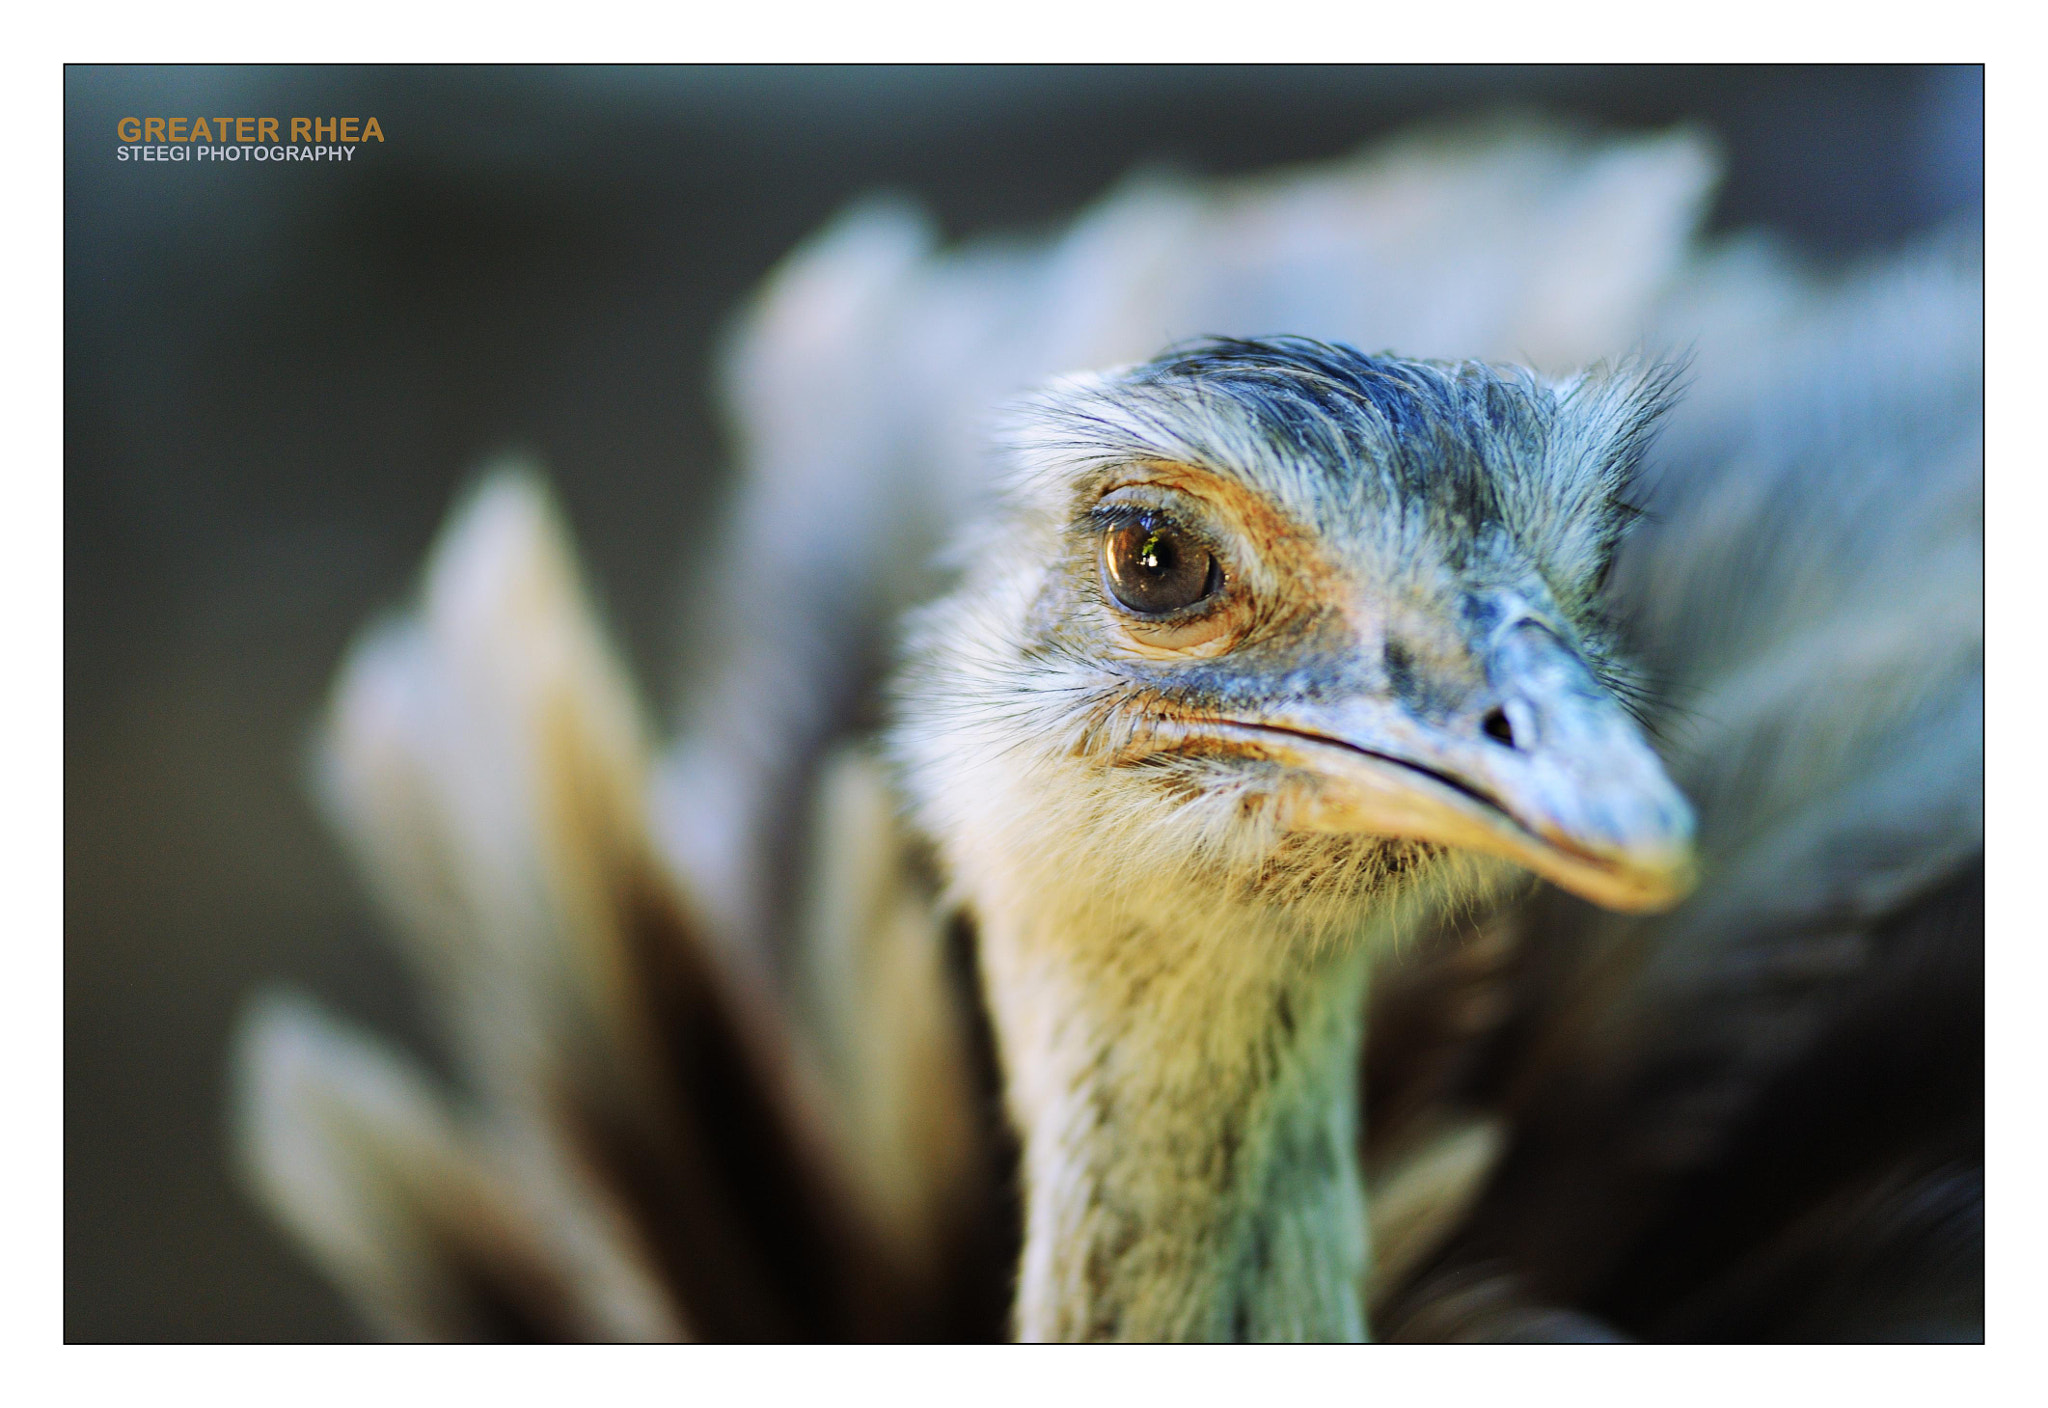 Photograph Greater Rhea by Andreas Steegmann on 500px